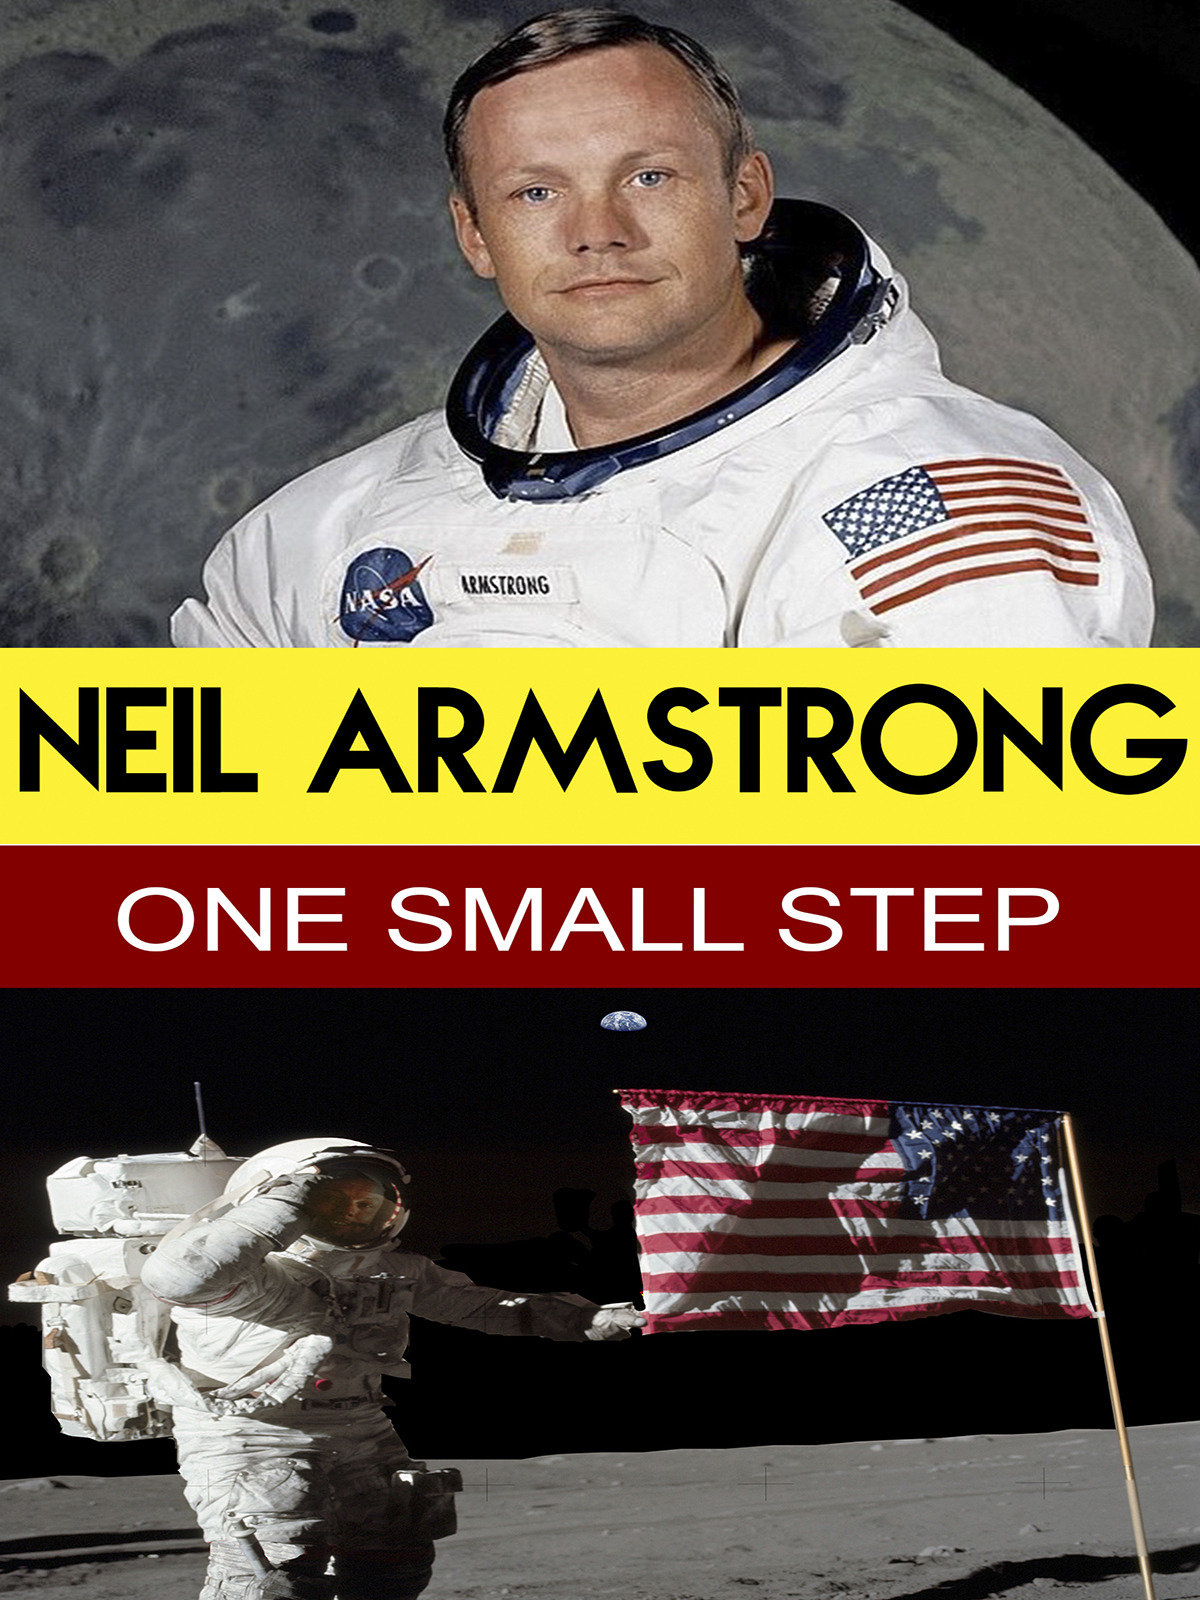 L7832 - Neil Armstrong - One Small Step